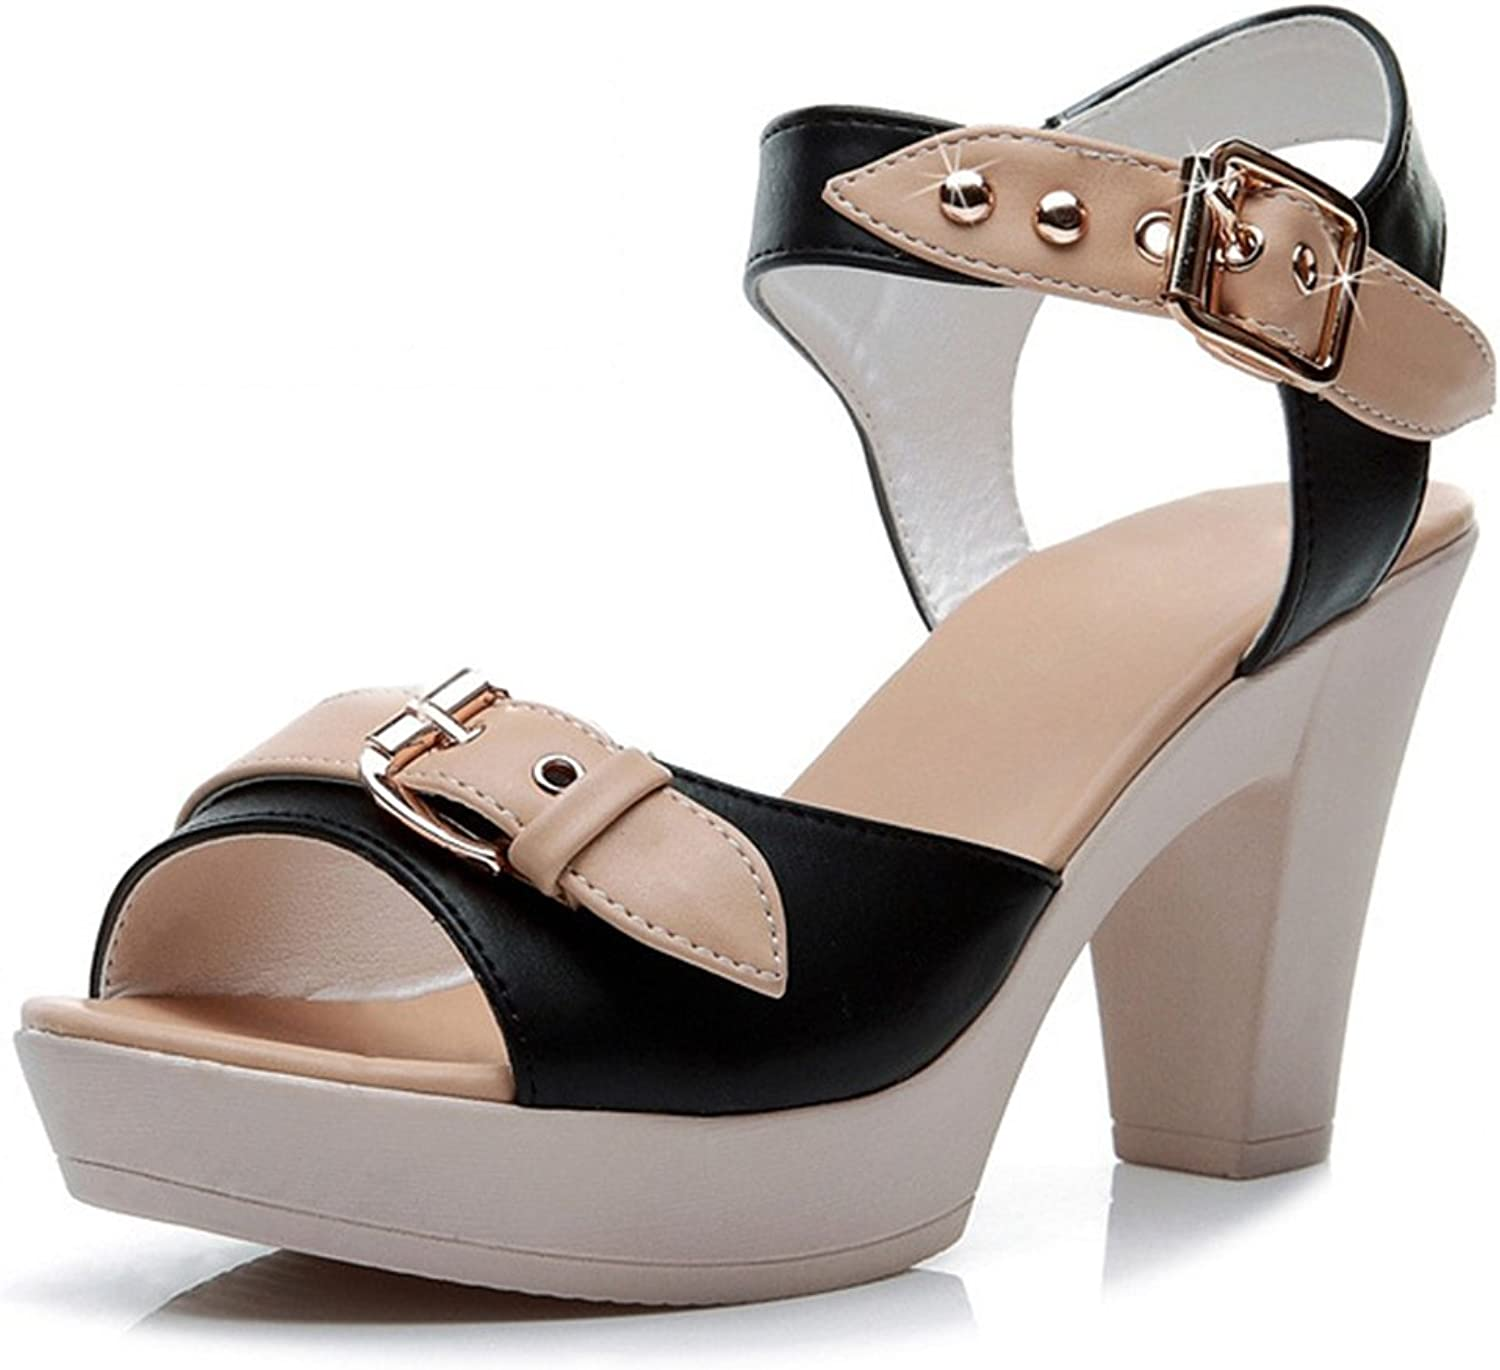 Womens Sandals Mixed colors Leather Buckle Strap Open Toe Square Heel High Heels